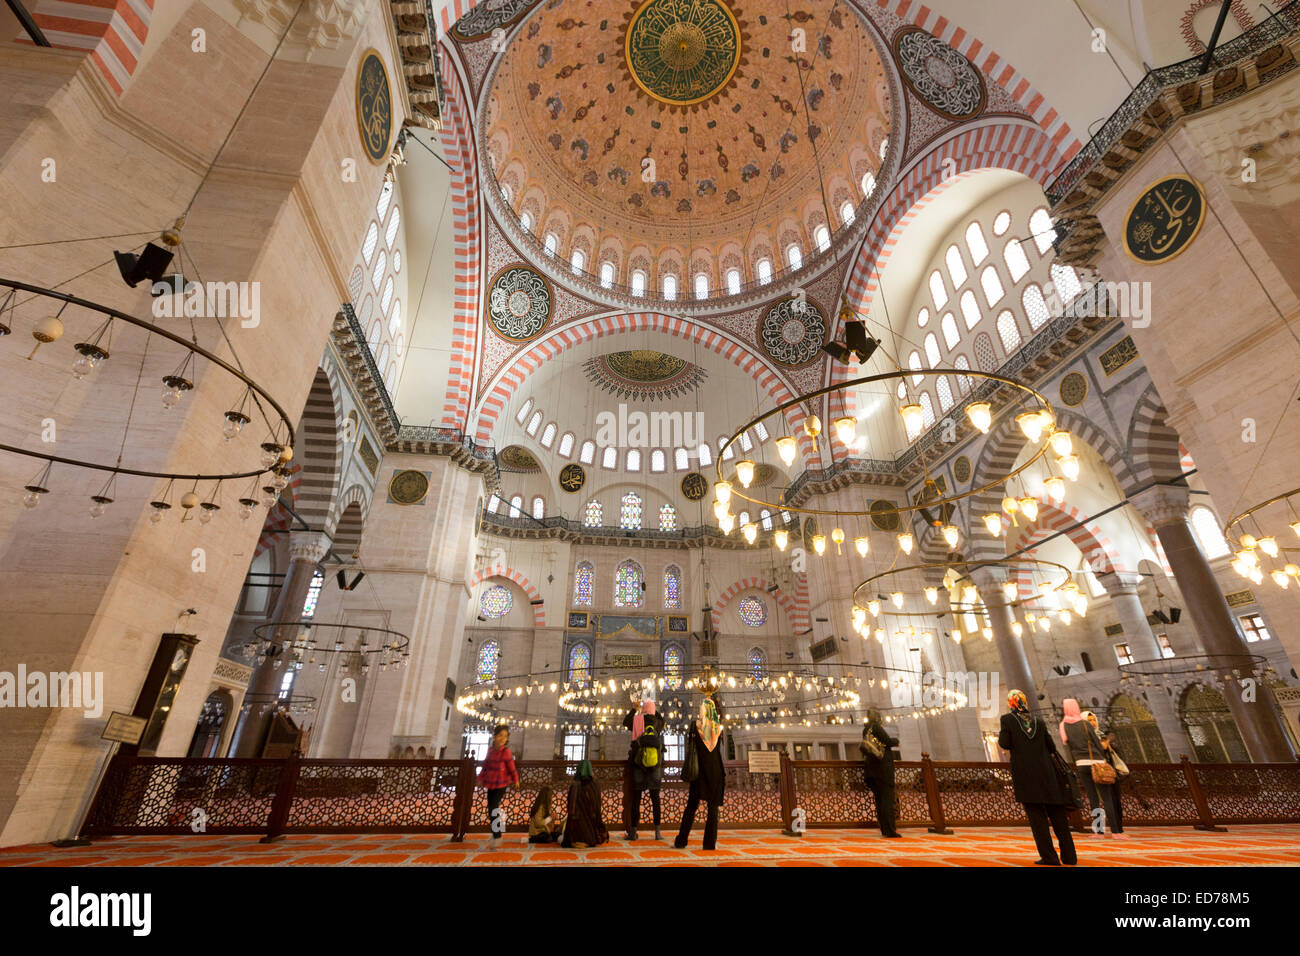 Tourists wearing scarves in interior of Suleymaniye Mosque in Istanbul, Republic of Turkey - Stock Image